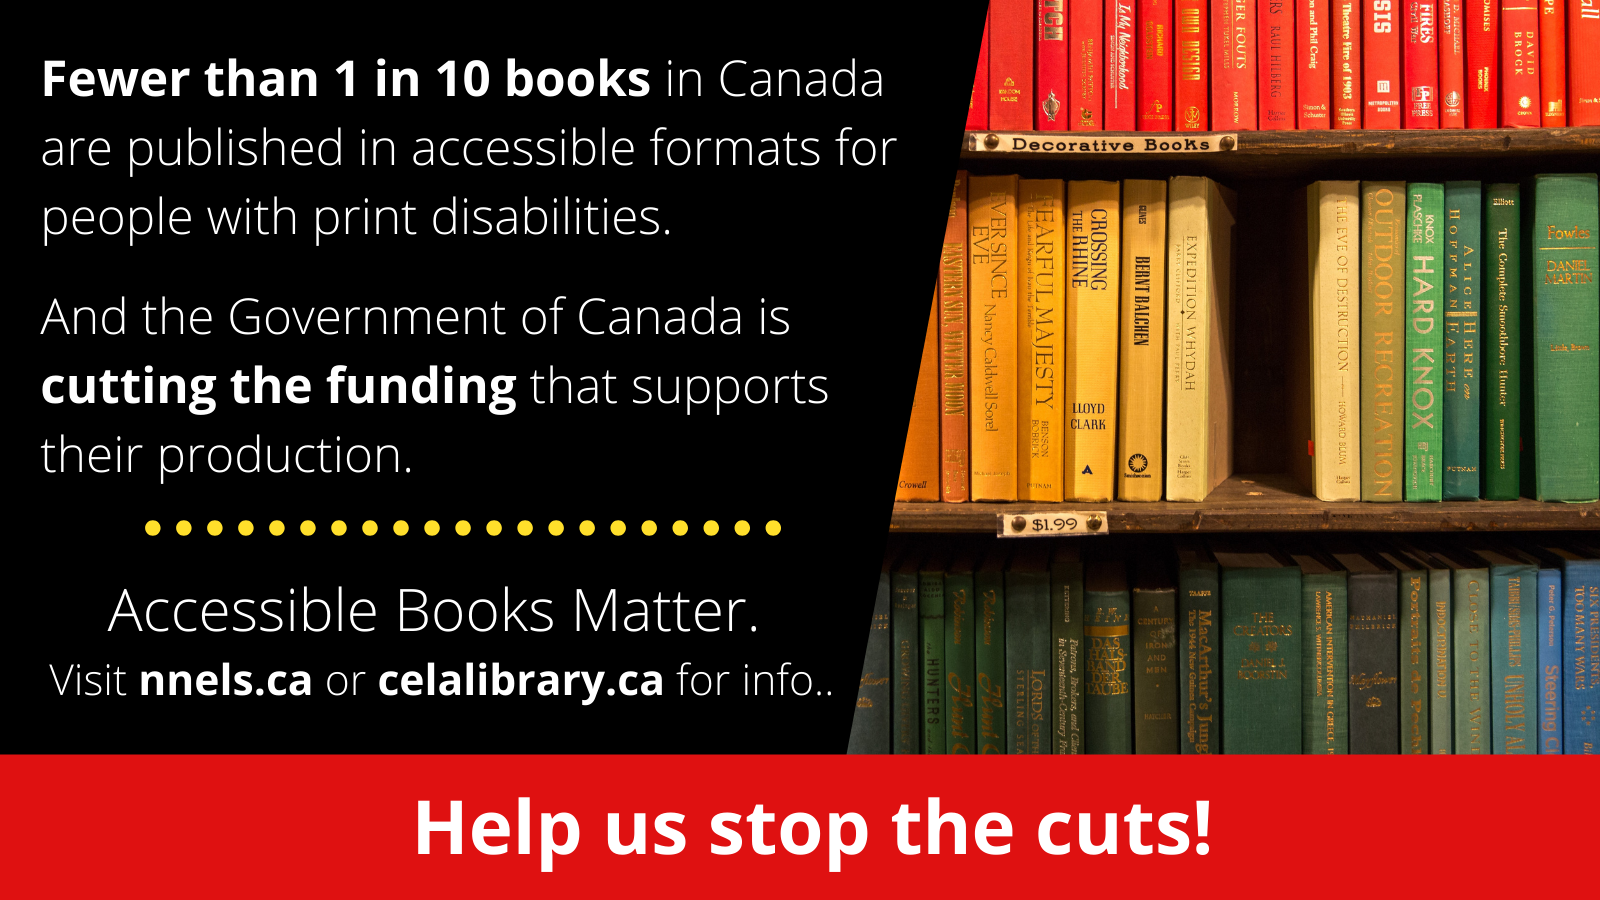 The graphic is cut in half. On the right is an image of 3 shelves of books. At the center of the middle shelf a book is missing creating a black hole. On the left is the following text: Fewer than 1 in 10 books in Canada are published in accessible formats for people with print disabilities. And the Government of Canada is cutting the funding that supports their production. Accessible Books Matter. Visit celalibrary.ca or nnels.ca for info. At the bottom in a red bar is white text which reads Help us stop the cuts!